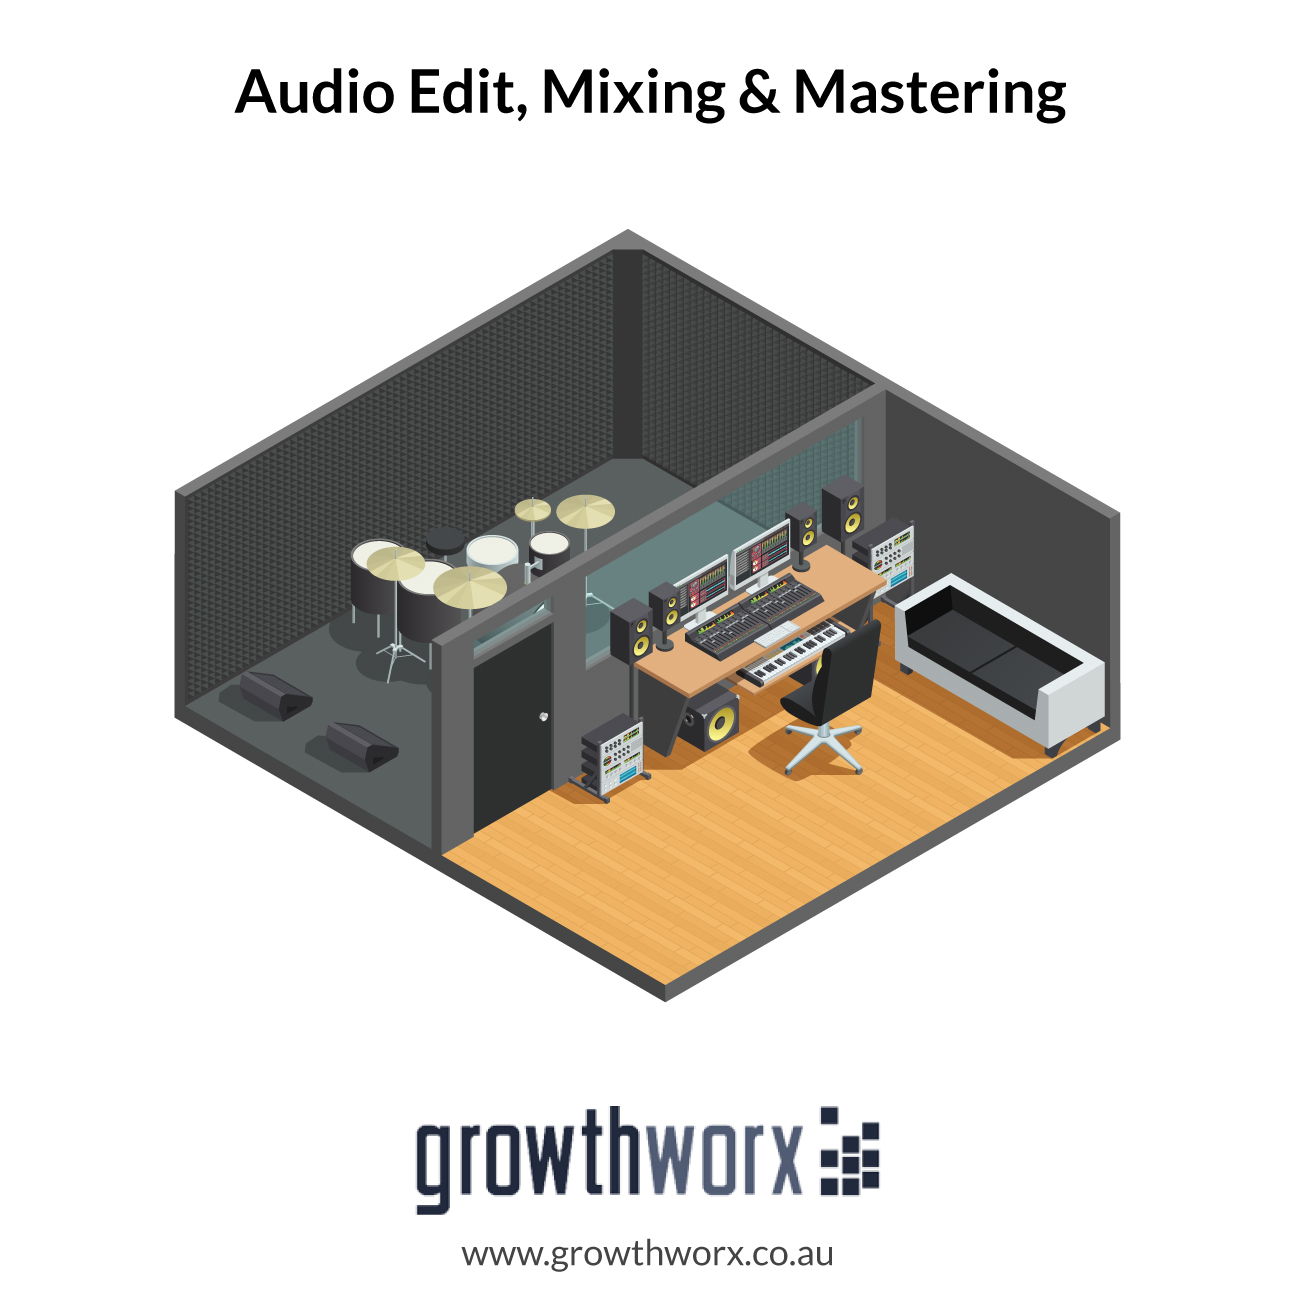 I will edit, mixing and mastering 1